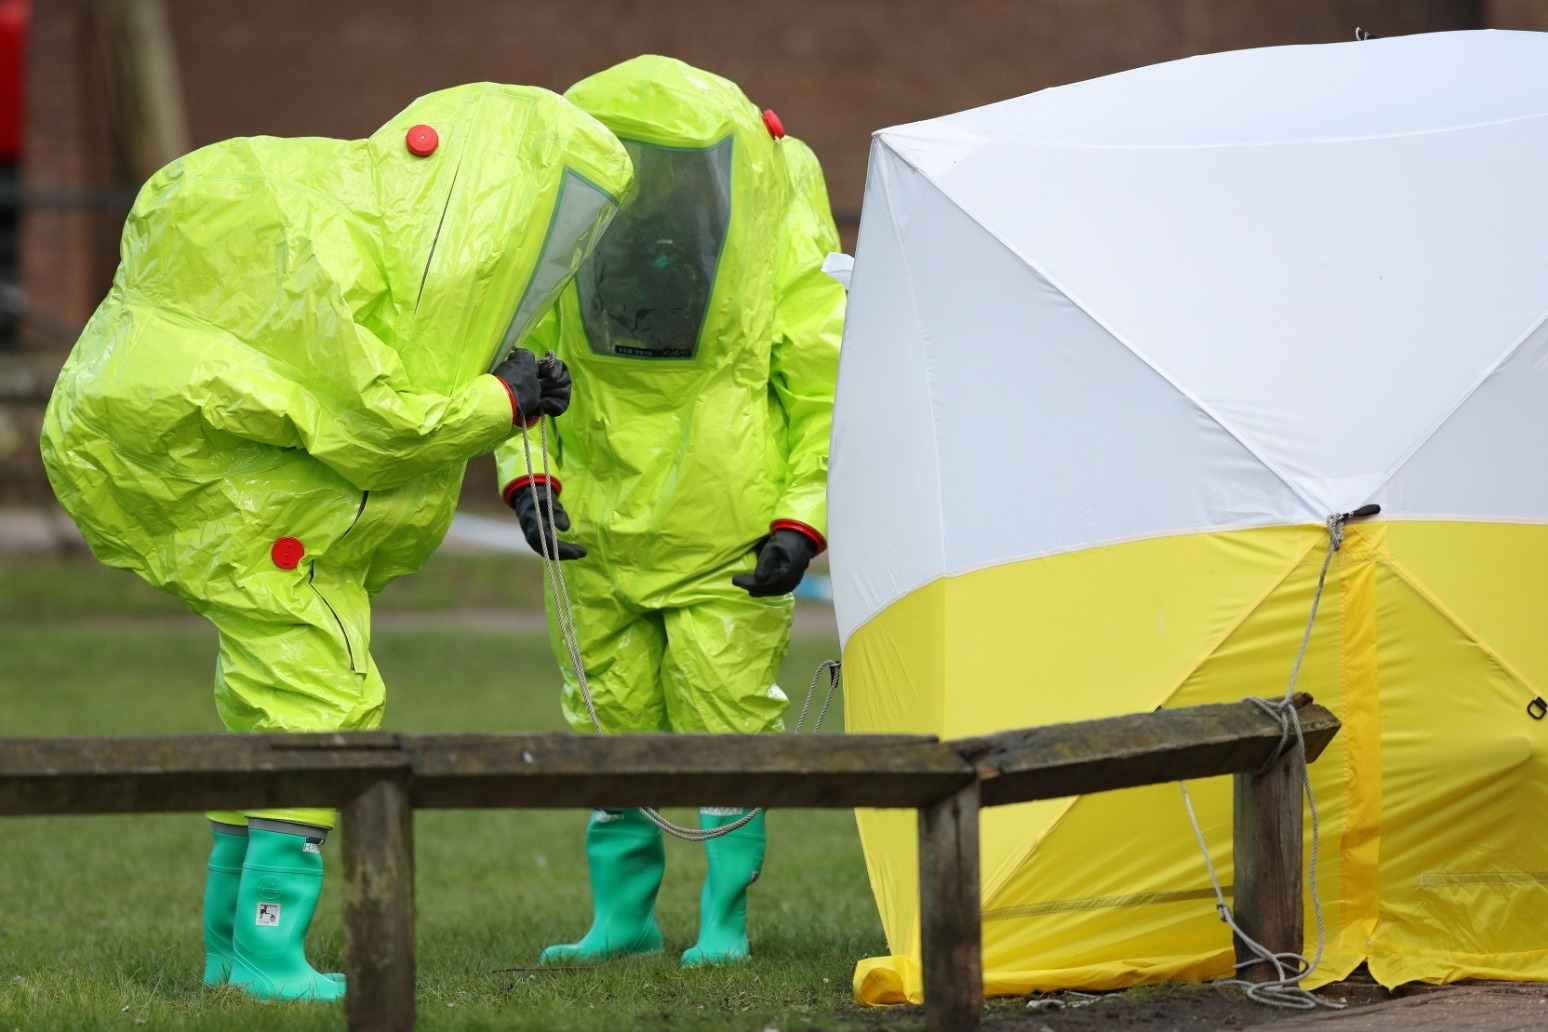 Defence Secretary: Threat of more chemical attacks in wake of Novichok poisoning